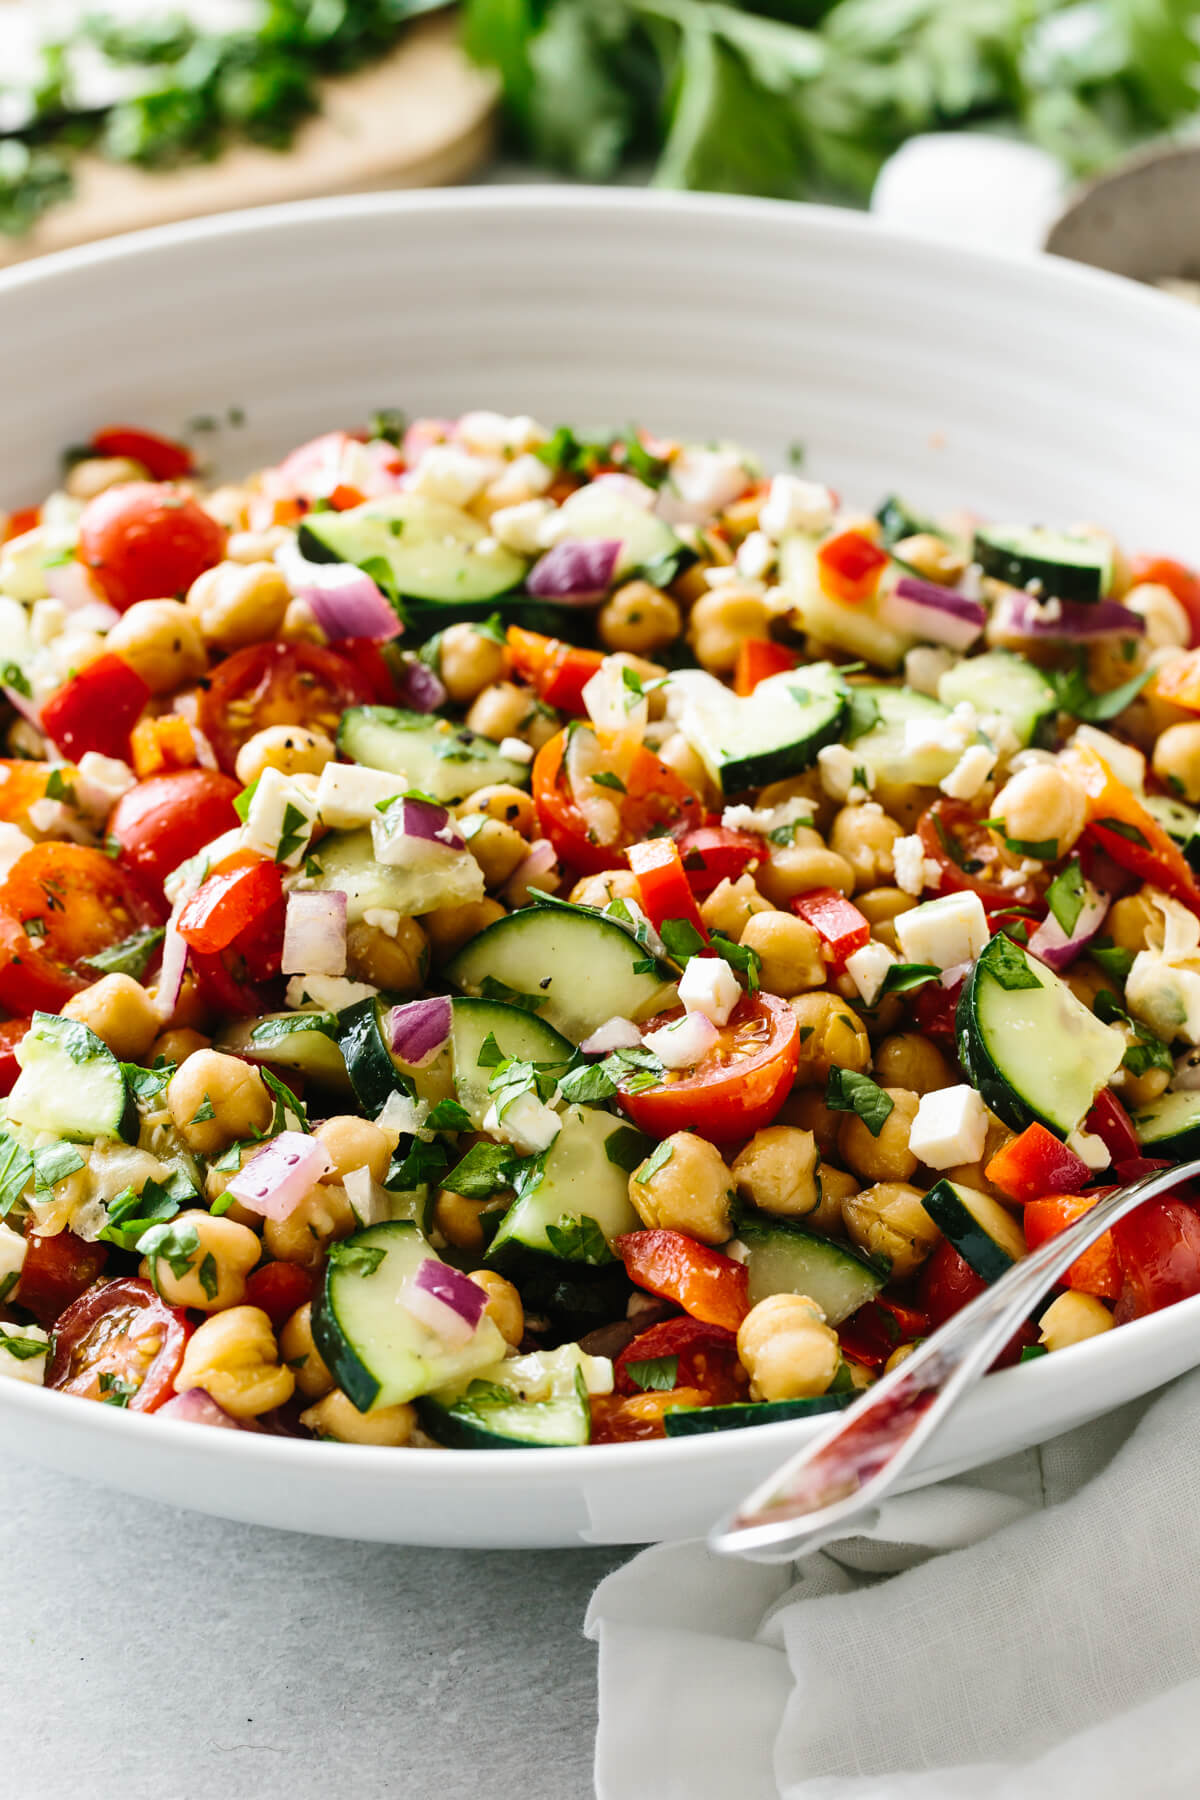 A bowl of Mediterranean chickpea salad with fresh parsley in the background.